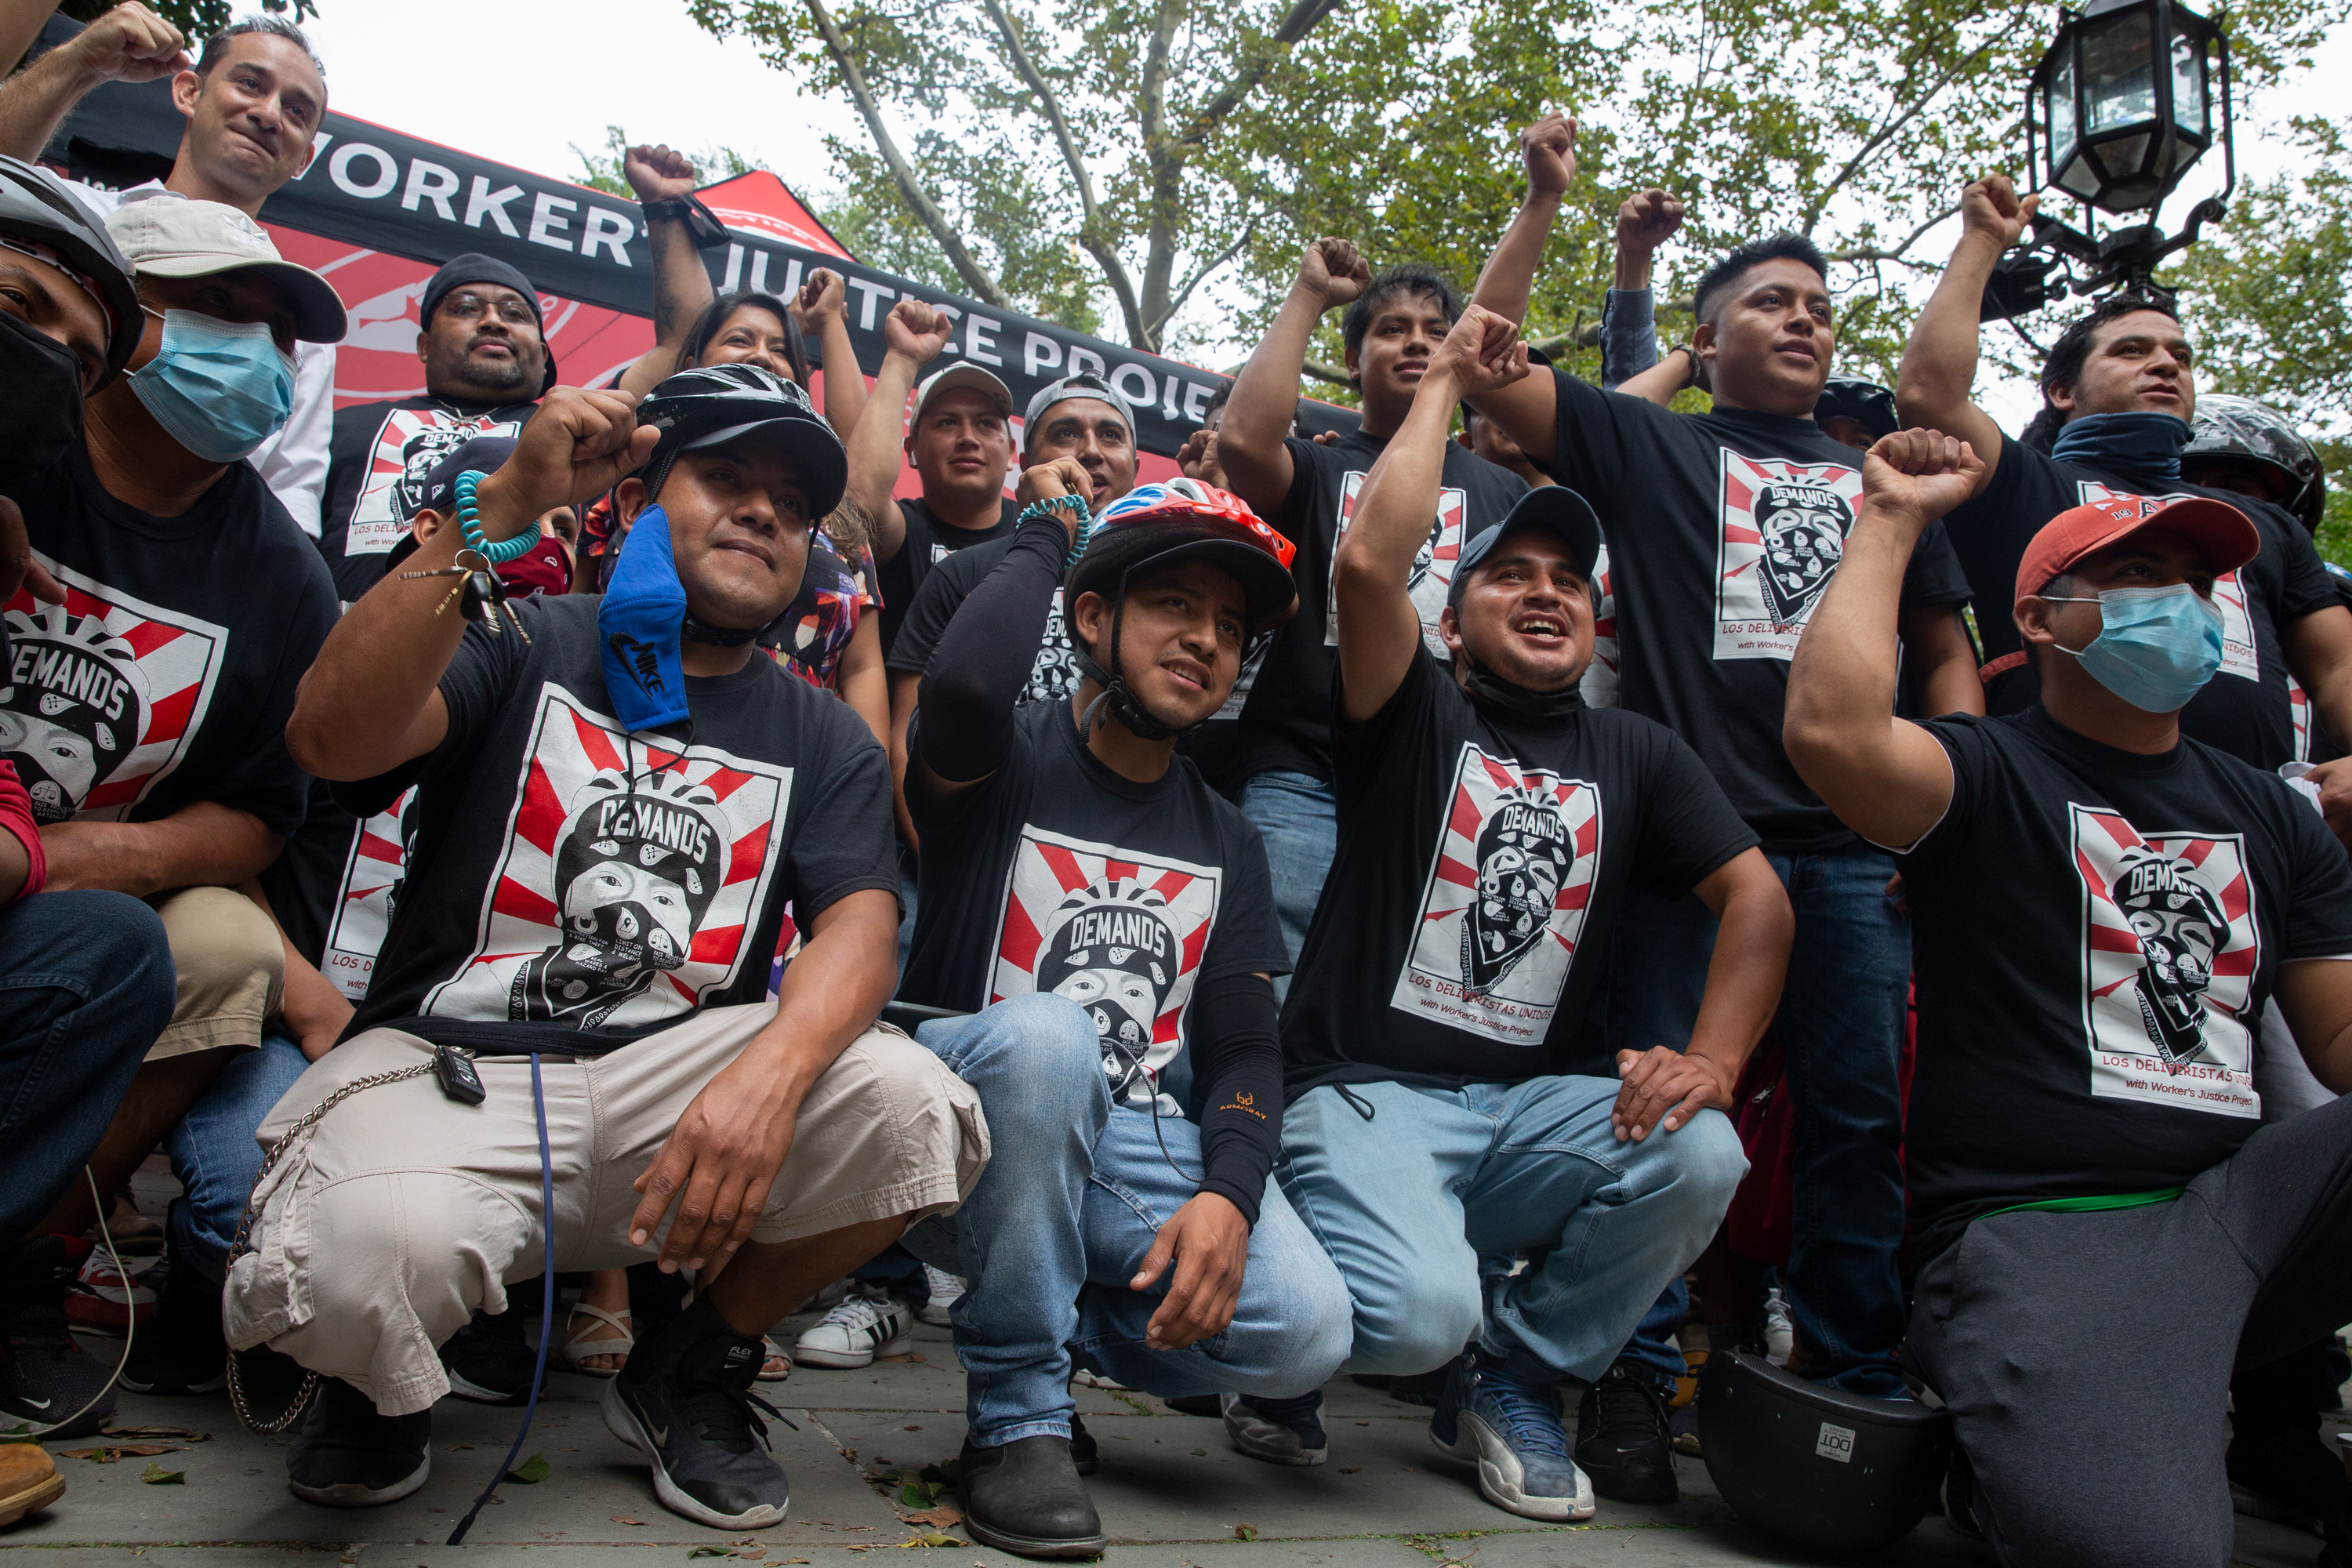 Deliveristas rallied at City Hall ahead of a vote to improve their working conditions, Sept. 23, 2021.